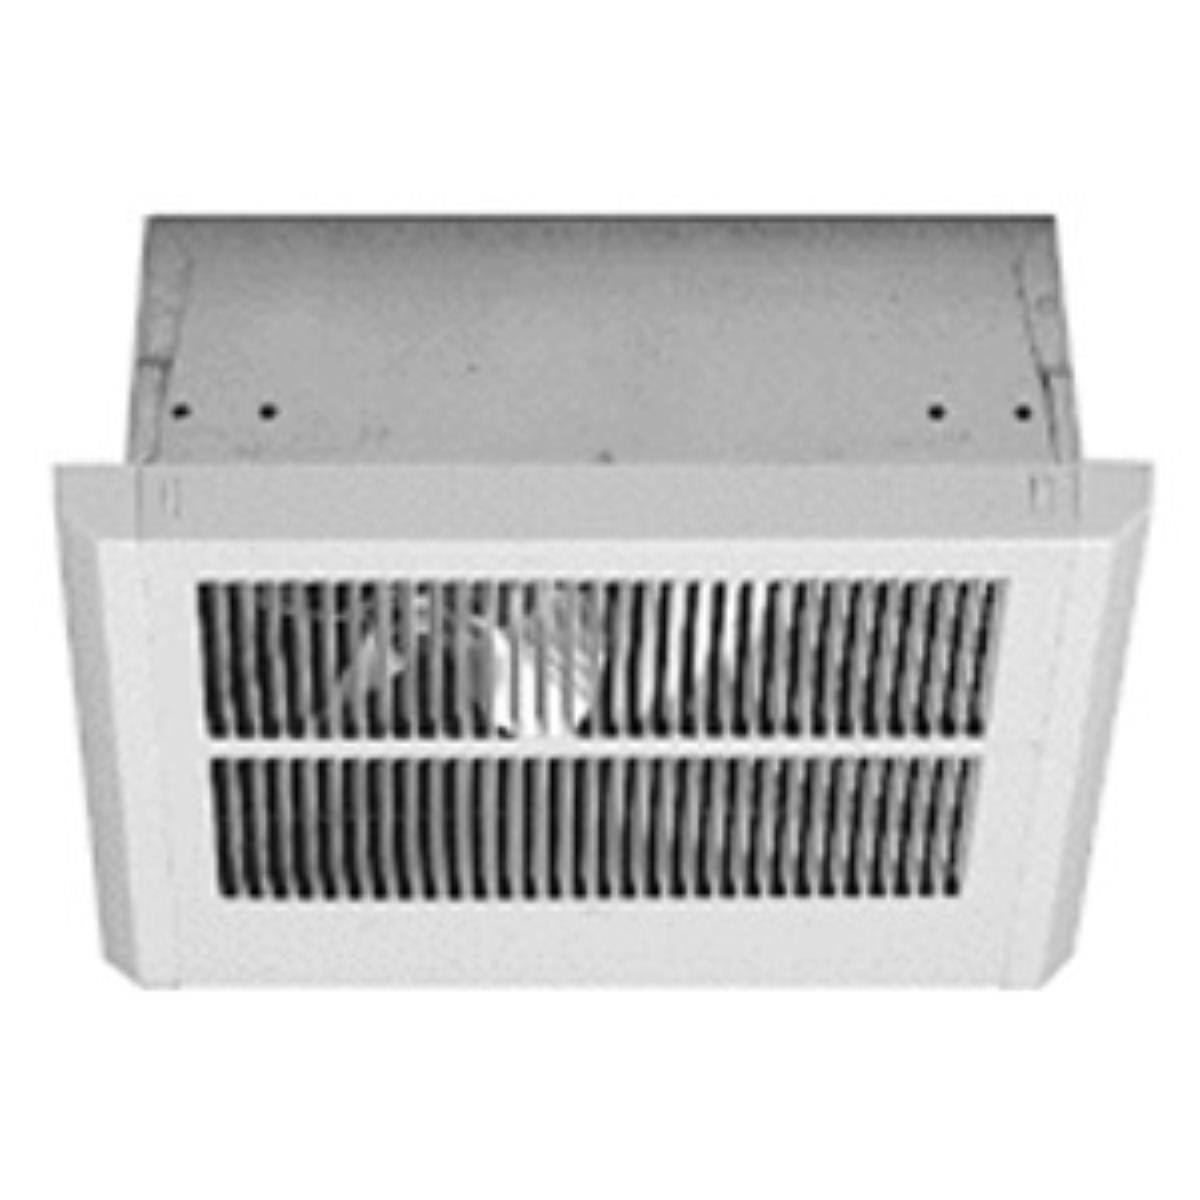 Marley QCH1207 Qmark Electric Ceiling Mounted Heater ... on marley electric baseboard heating, marley electric heater motor, marley electric heater coil, marley base board heater, marley baseboard heater wiring, marley wall heaters, marley thermostat wiring diagram,